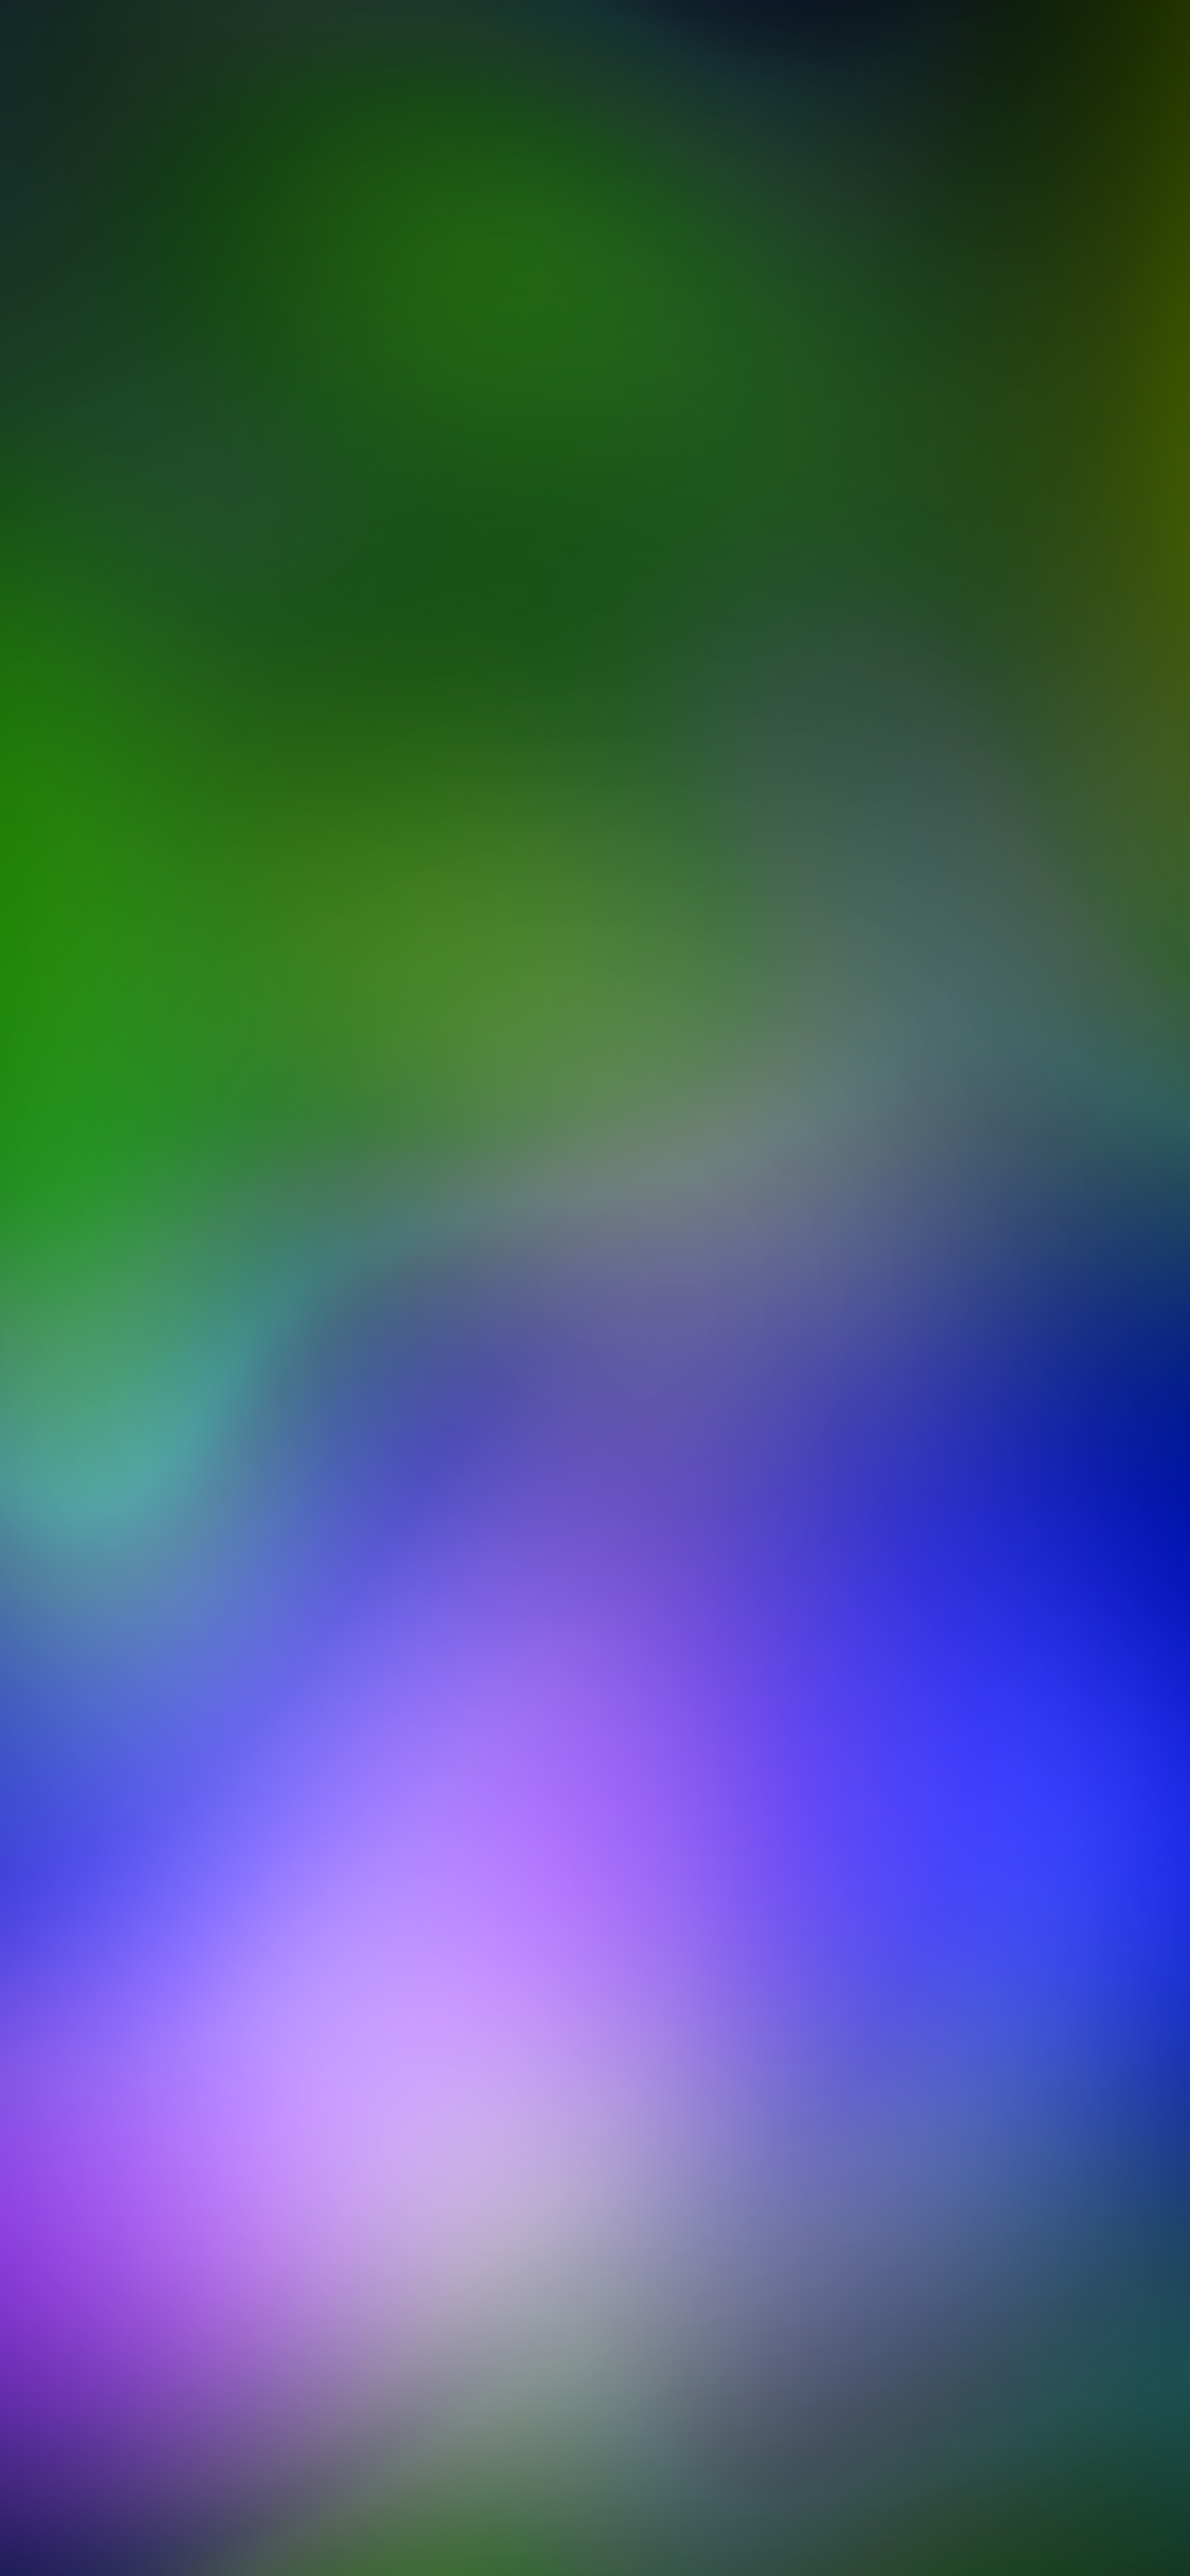 iPhone X inspired wallpaper pack 2250x4872